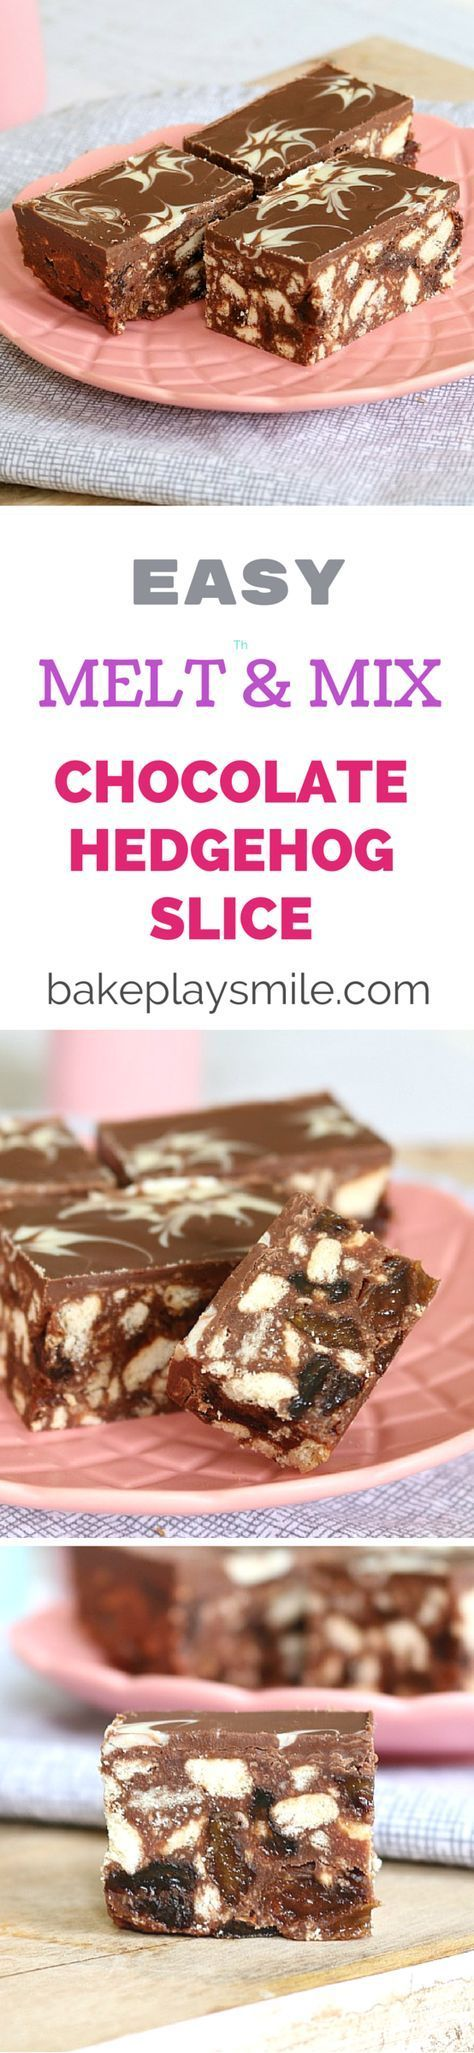 This is a family recipe that we've been using forever! It's the easiest No-Bake Chocolate Hedgehog Slice! ~